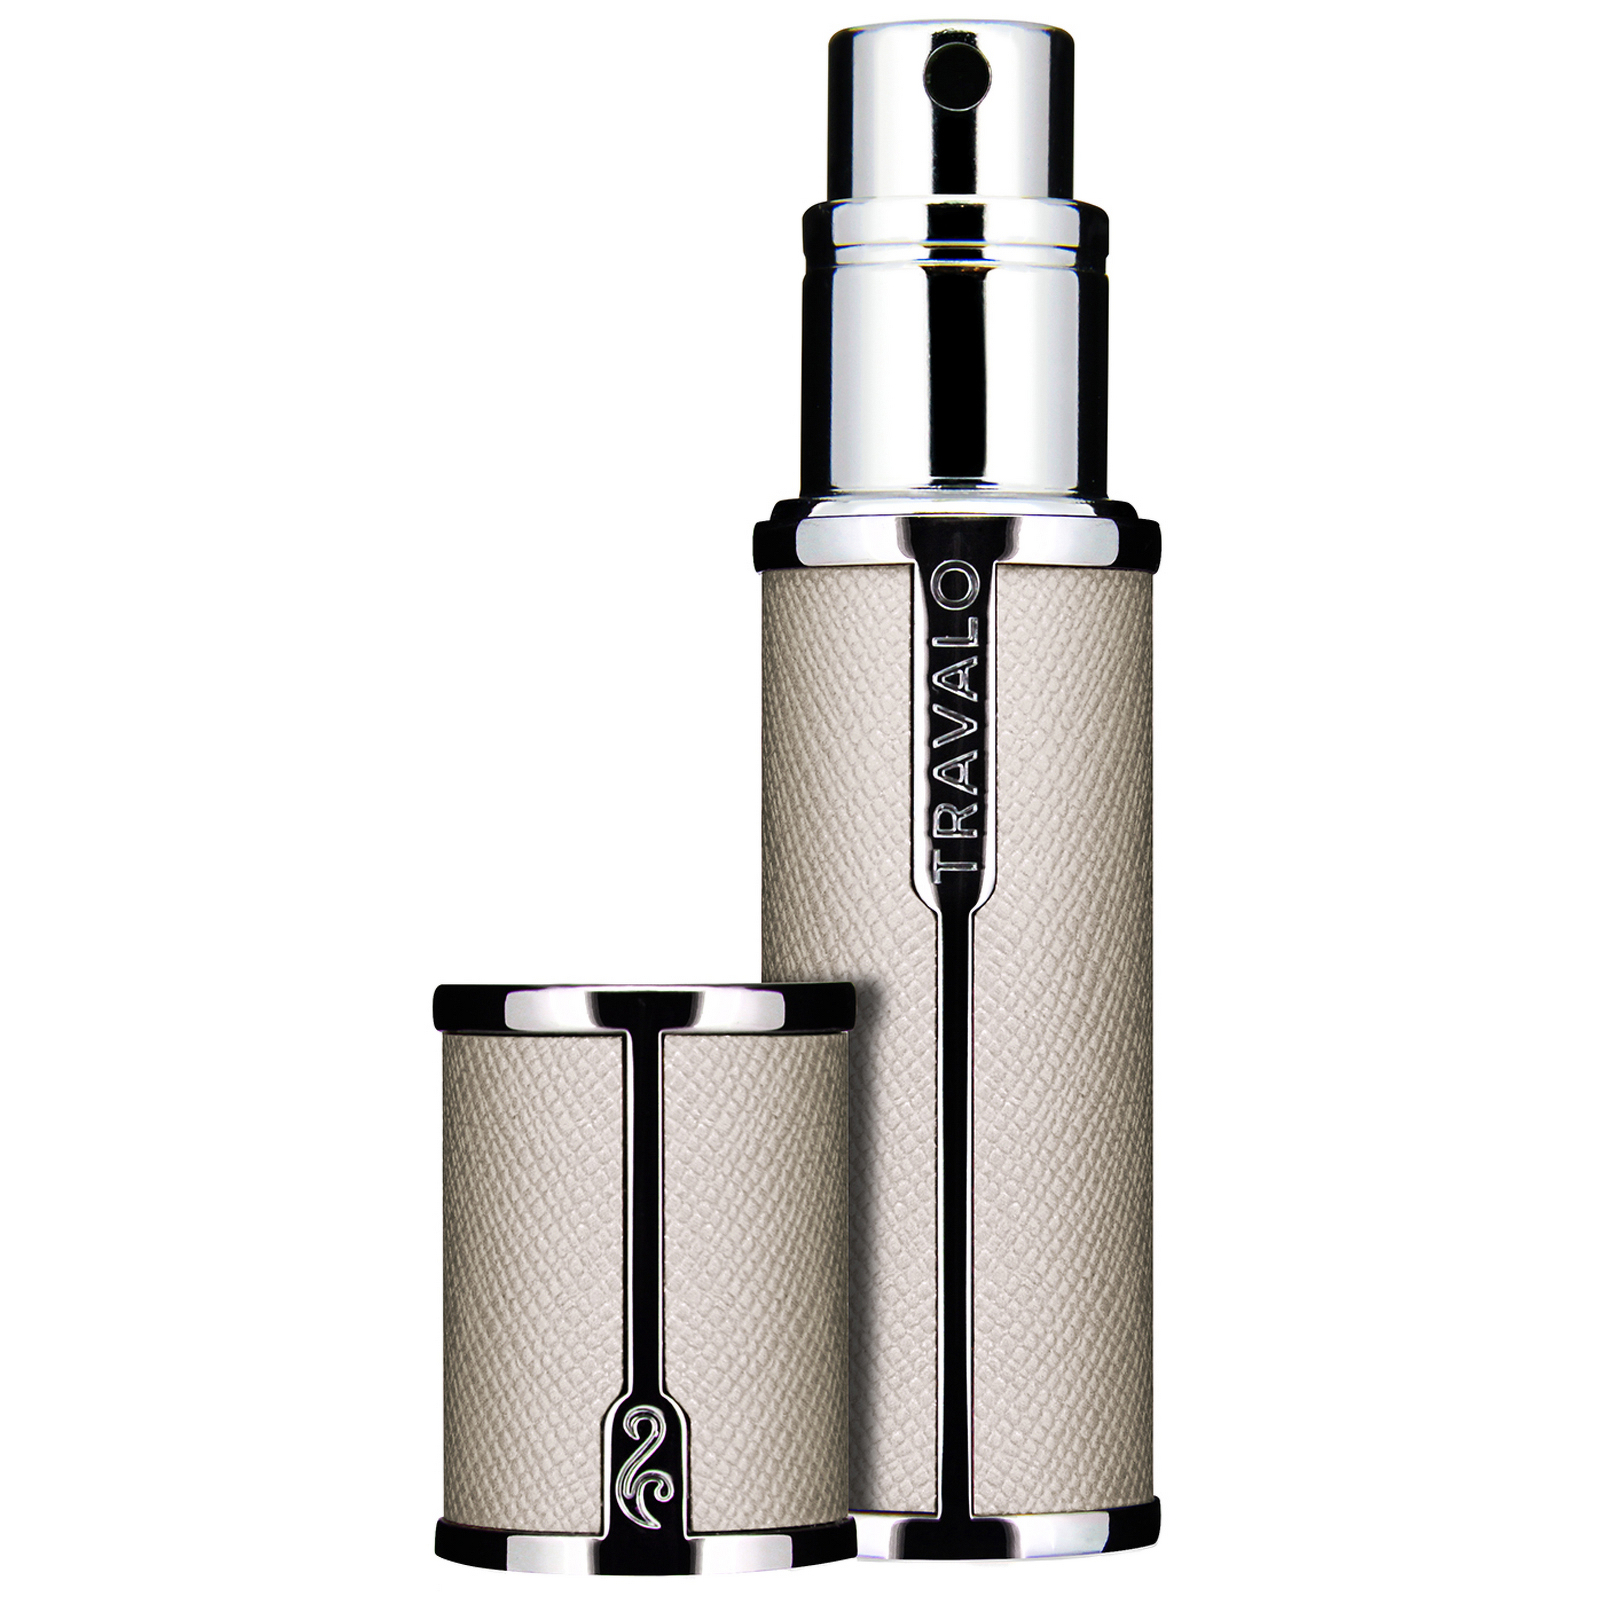 Travalo Perfume Atomiser Milano White 5ml / 0.17 fl.oz.